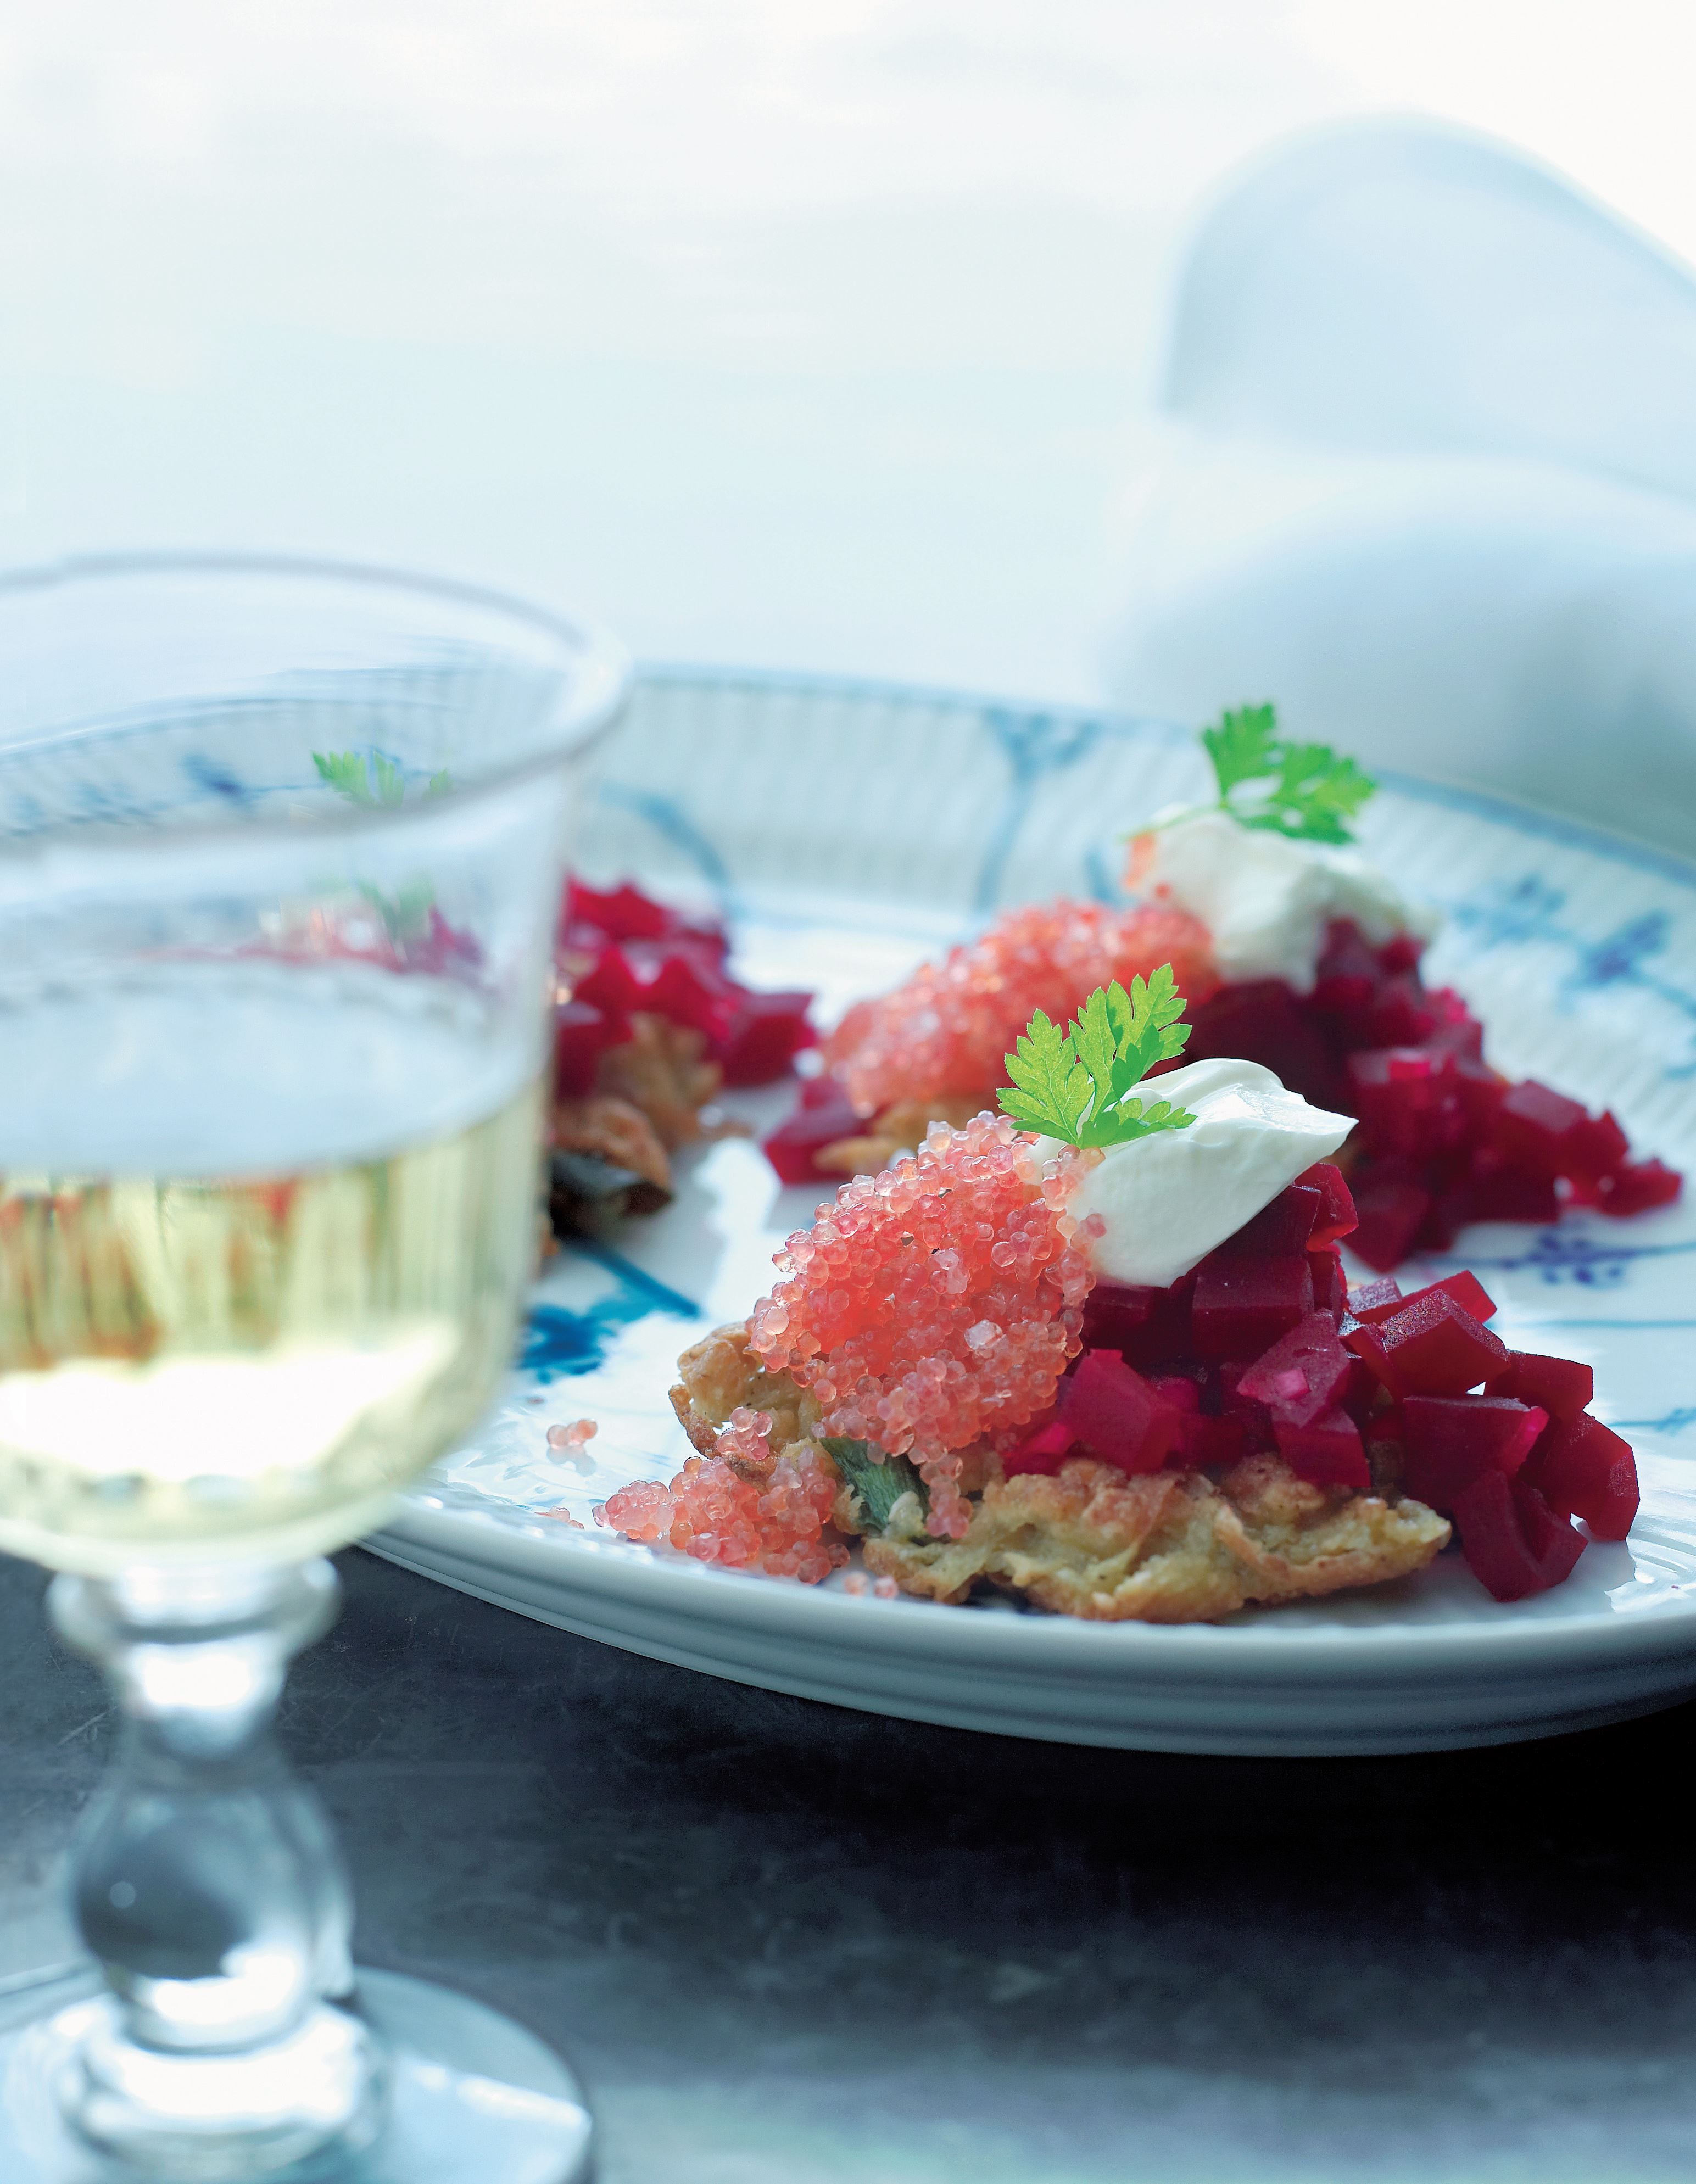 Potato cakes with lumpfish roe and beetroot salad